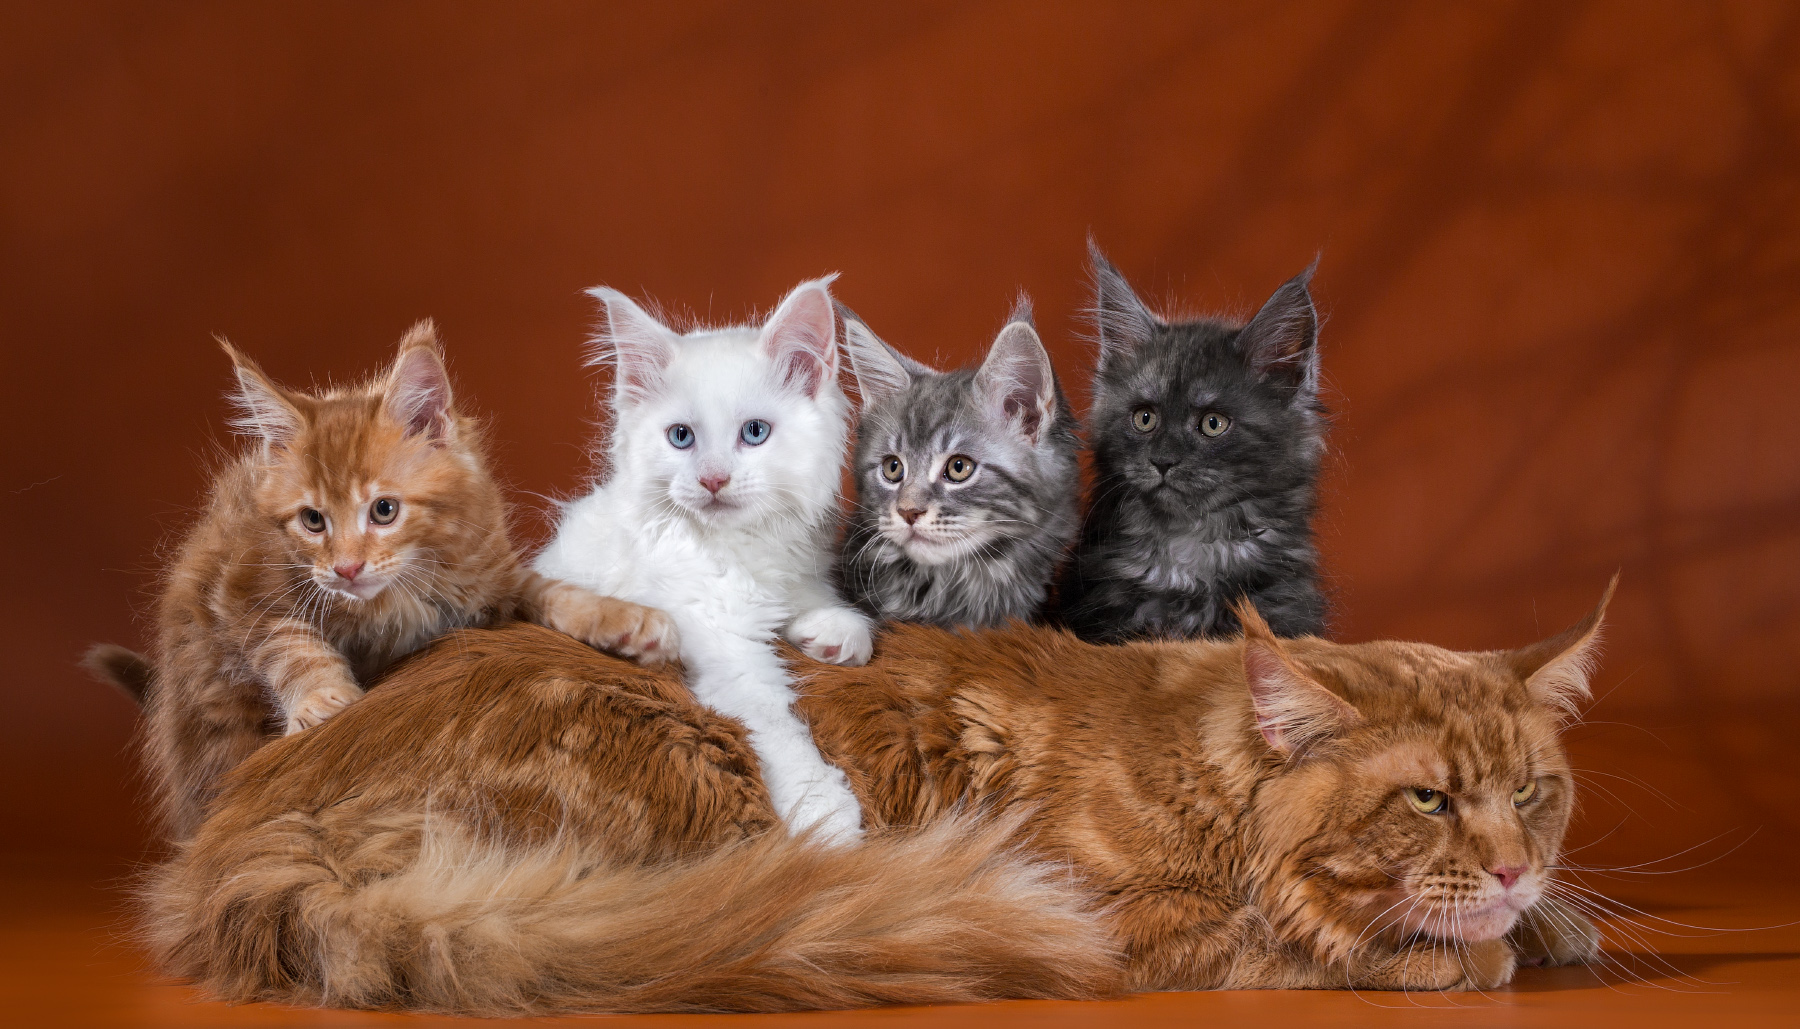 Kittens Maine Coon from the pound Enigma Spirit